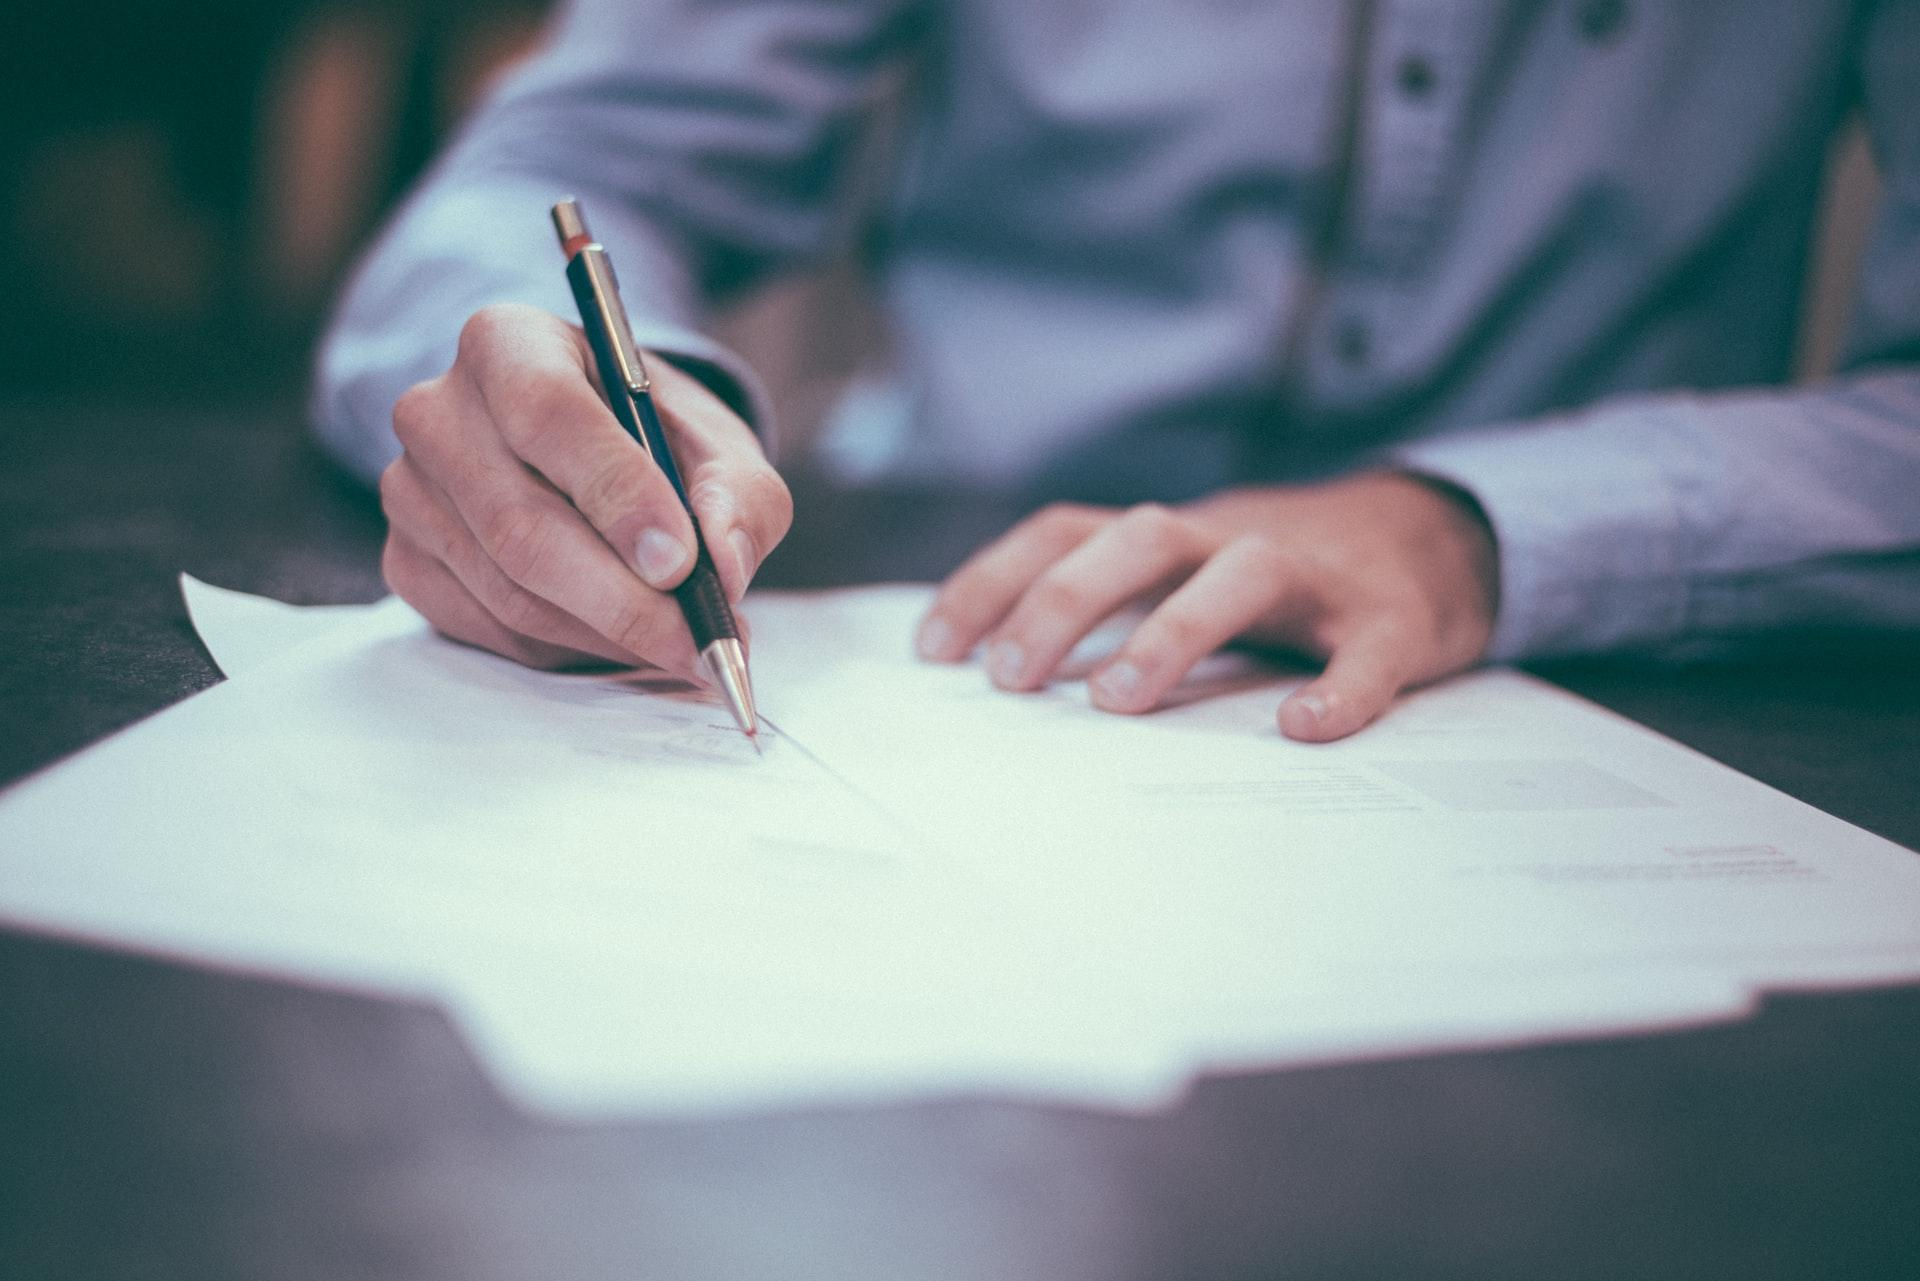 businessman is writing a letter or signing a agreement